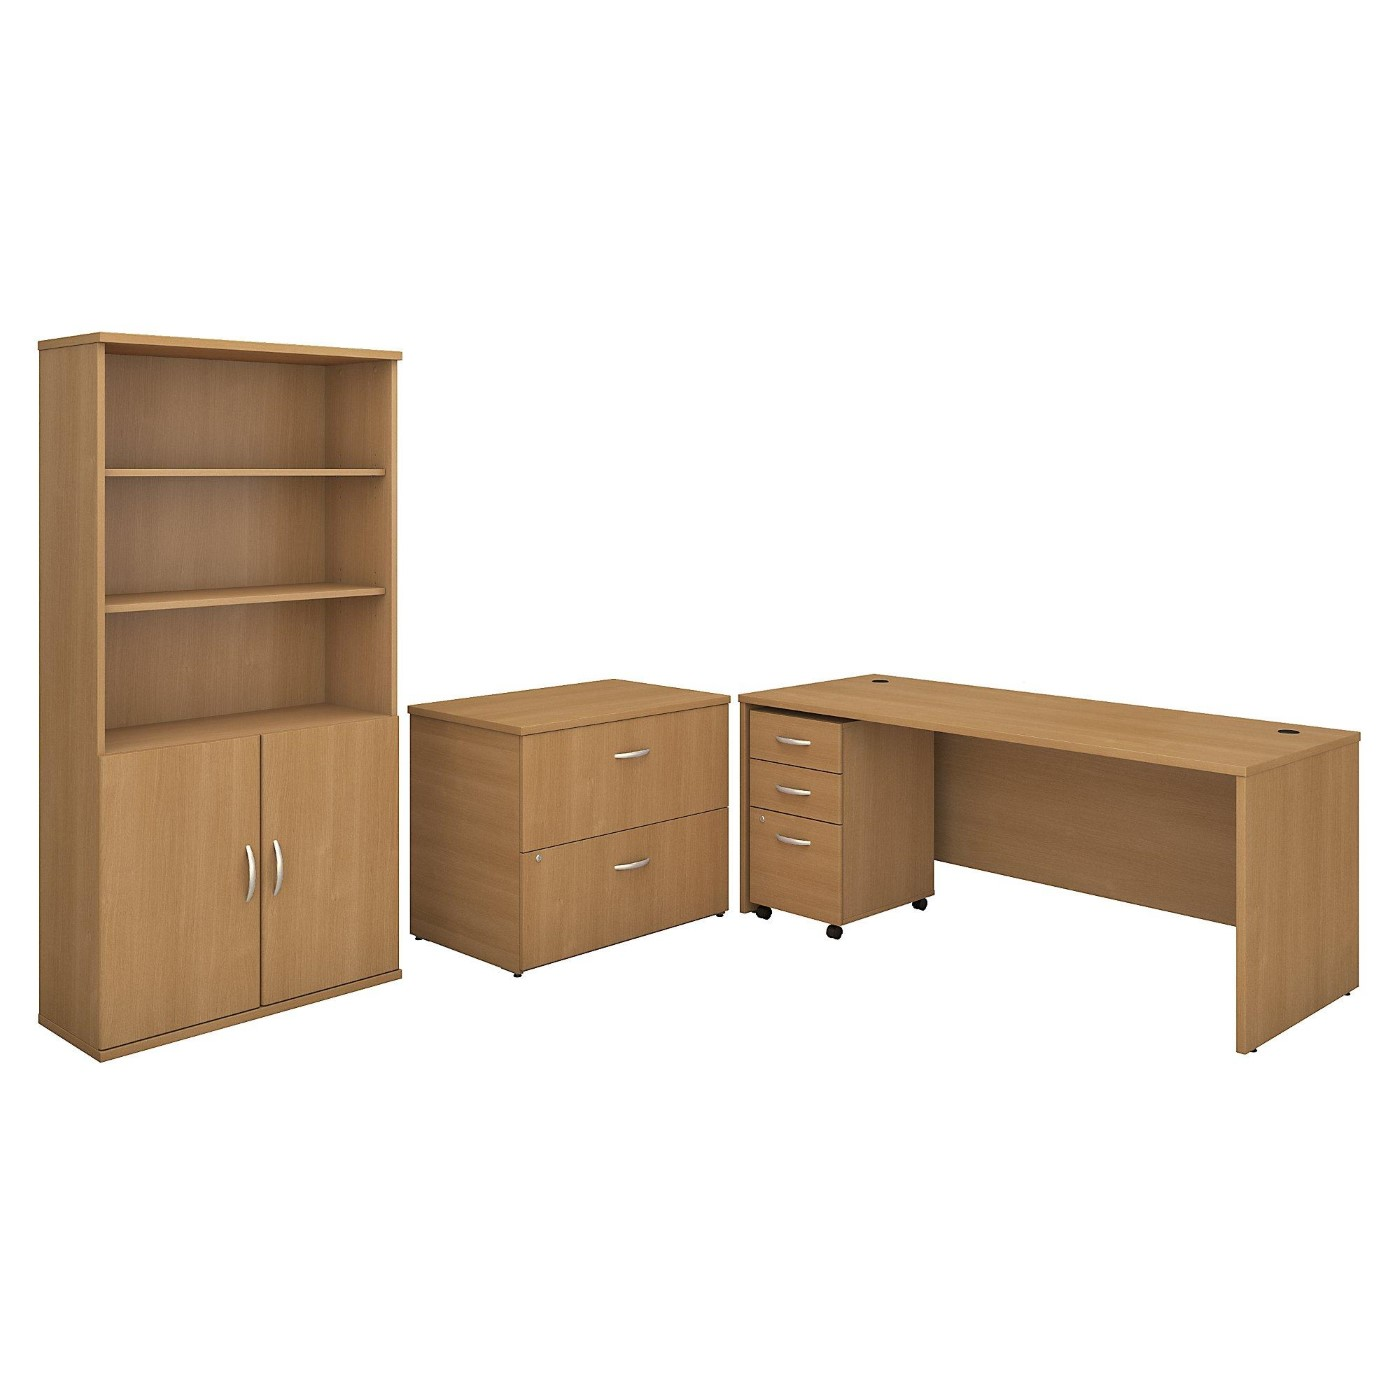 BUSH BUSINESS FURNITURE SERIES C 72W OFFICE DESK WITH BOOKCASE AND FILE CABINETS. FREE SHIPPING.  SALE DEDUCT 10% MORE ENTER '10percent' IN COUPON CODE BOX WHILE CHECKING OUT.